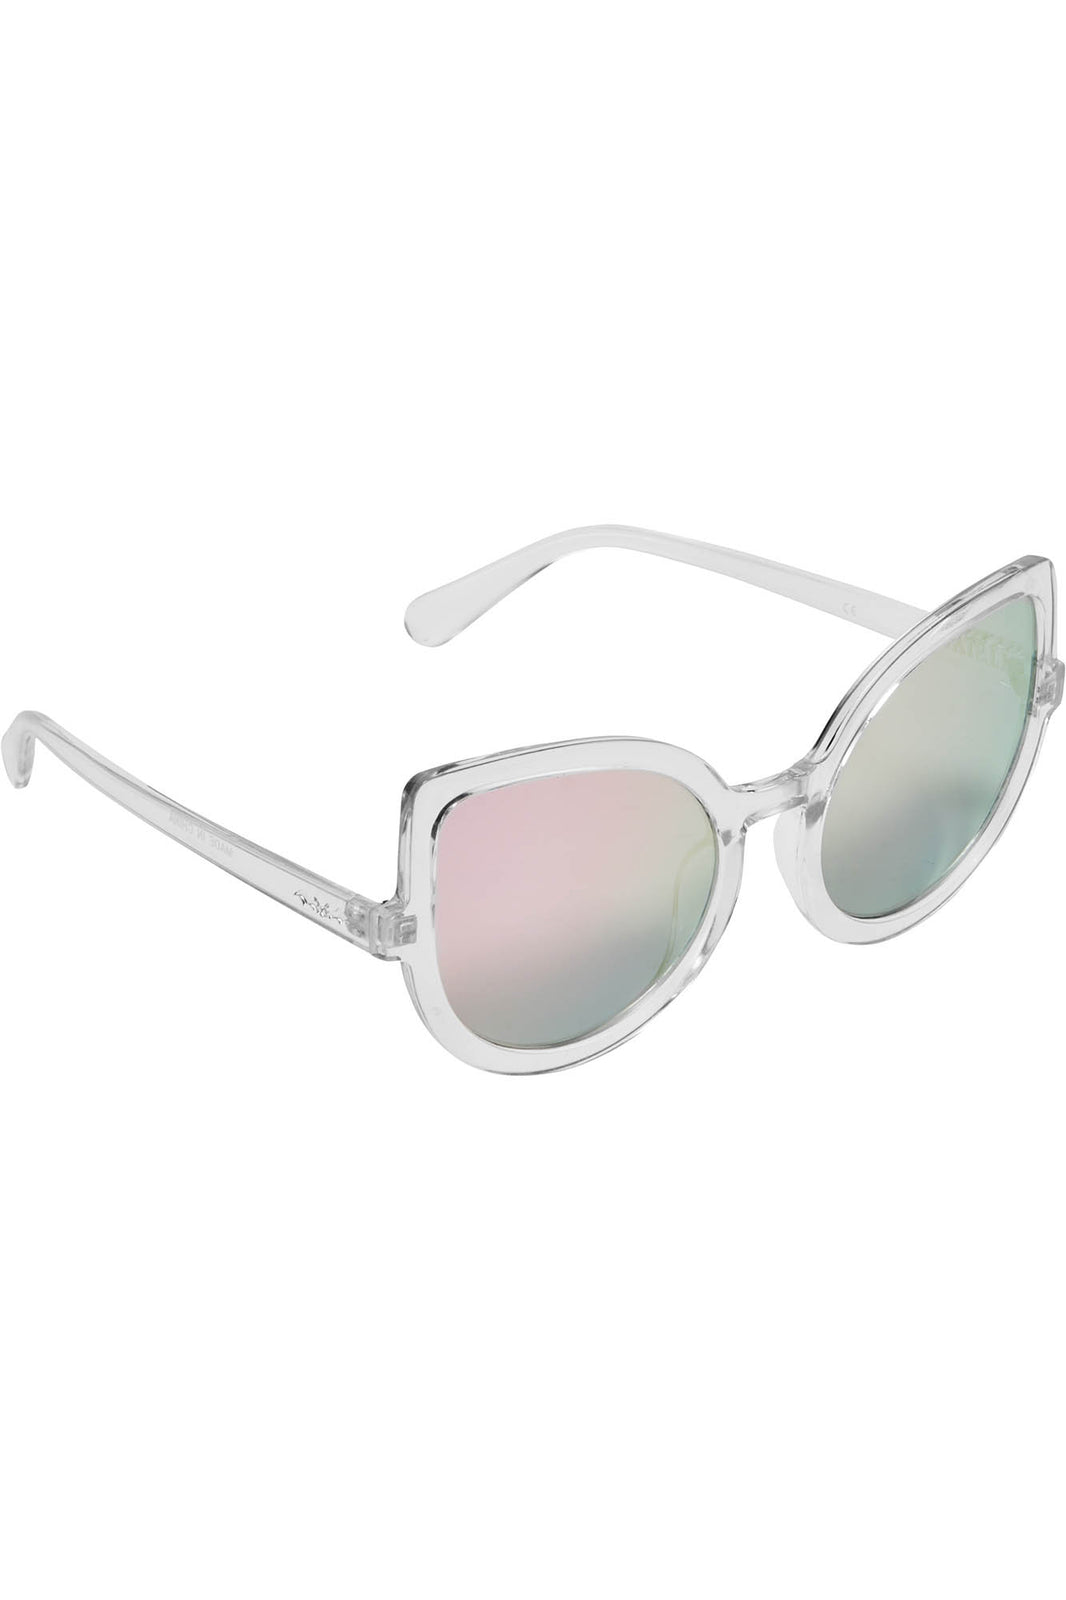 Space Kitty Sunglasses [CLEAR]